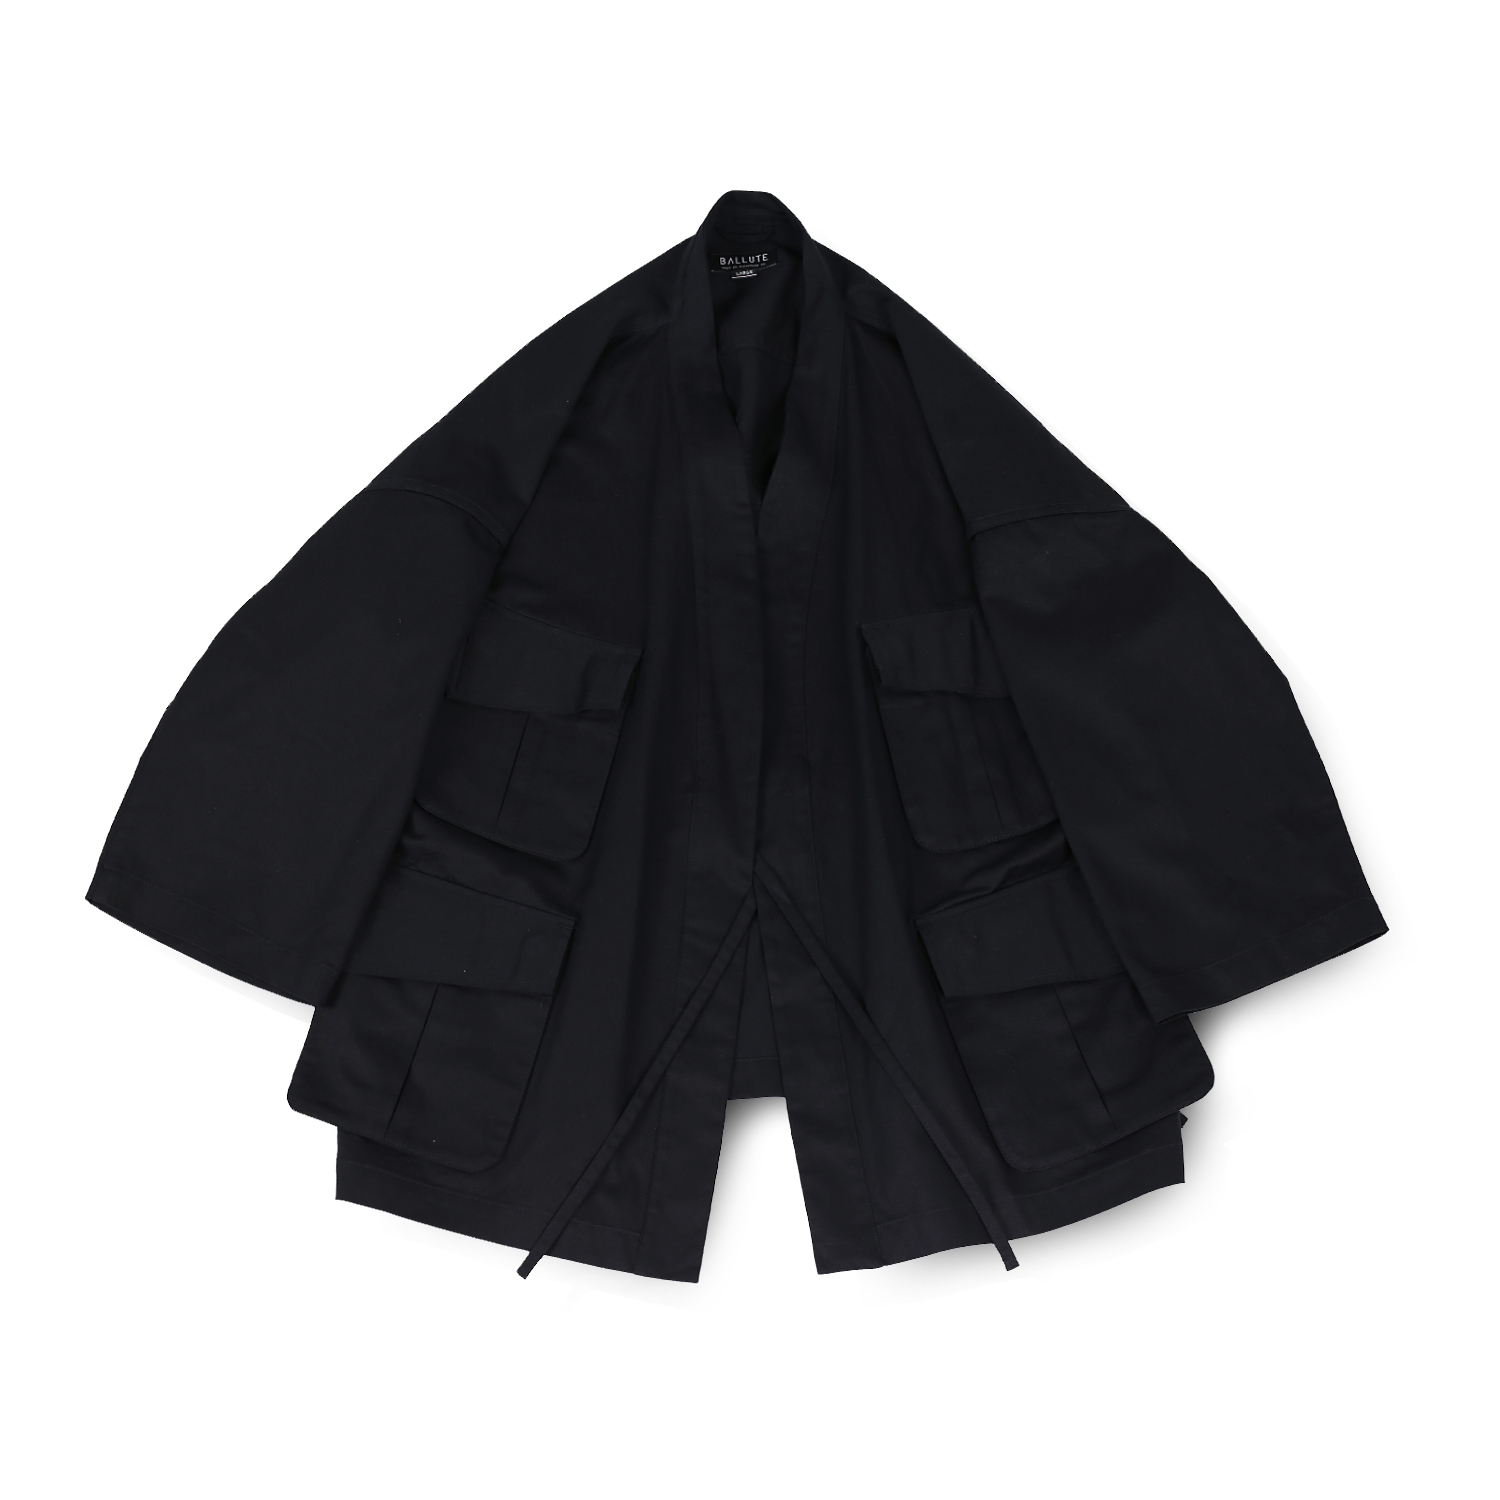 발루트 B.D.U ROBE JACKET_Black